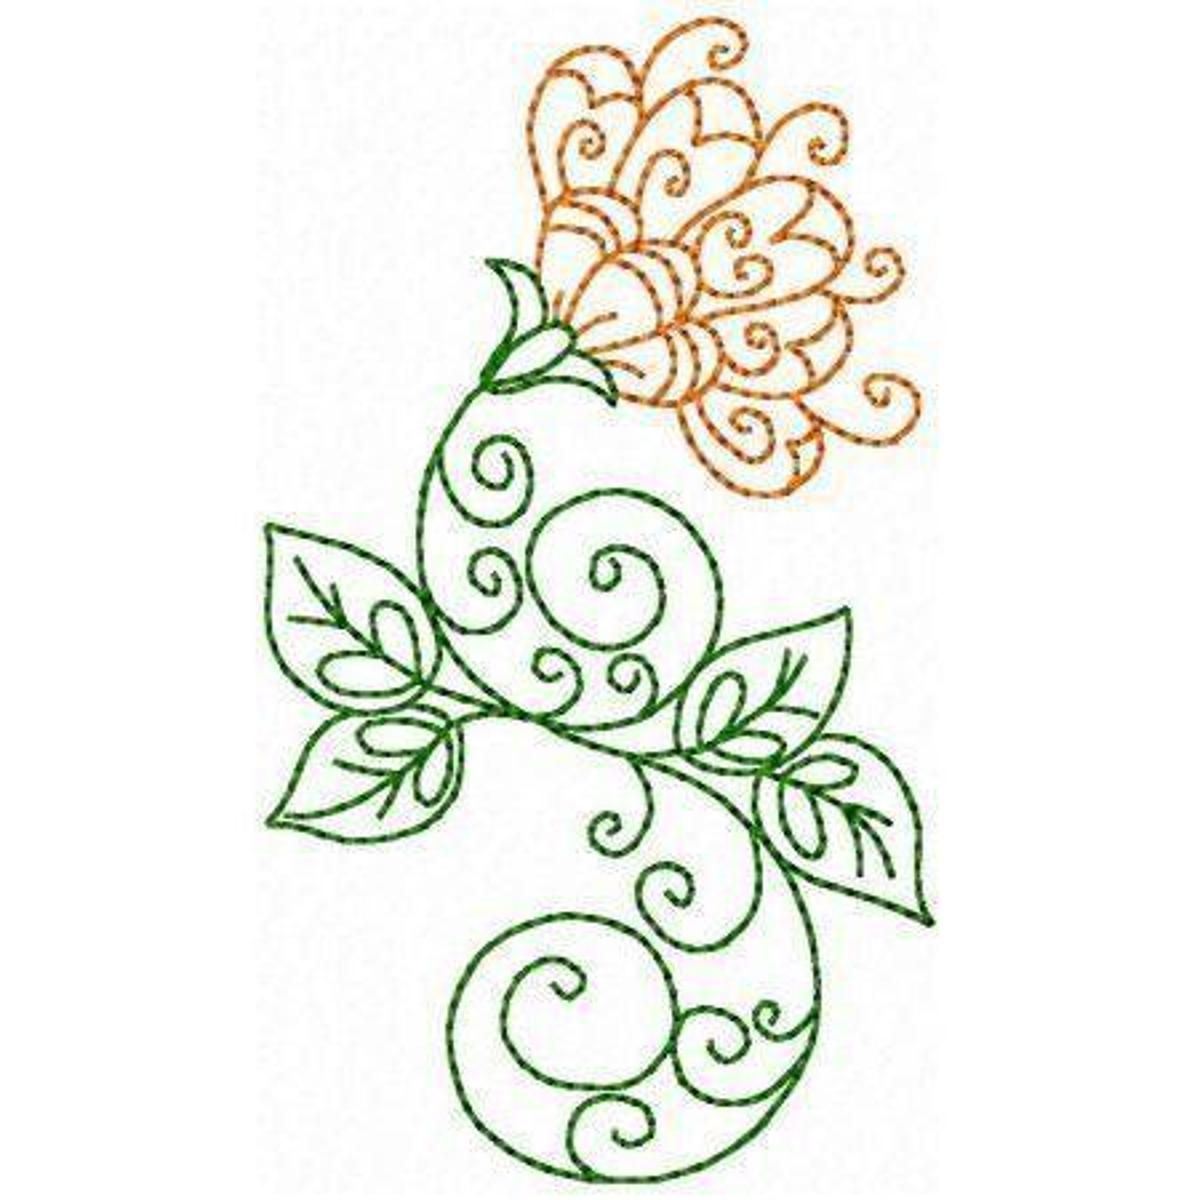 Elegant flowers embroidery pattern art pinterest embroidery